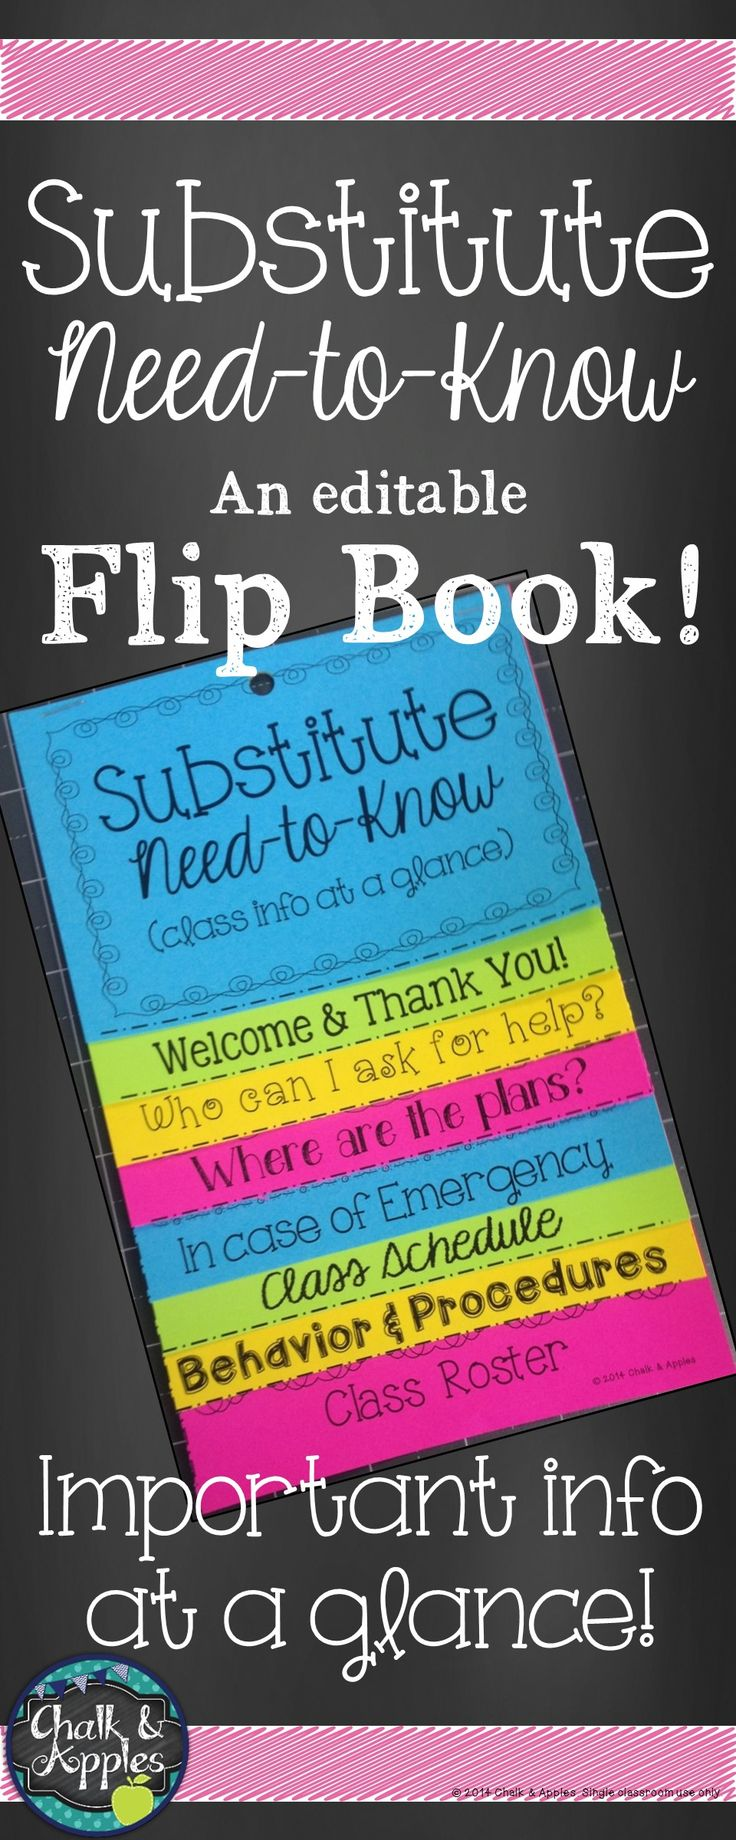 Editable quick reference flip book to help substitutes find the most important info they need about your class at a glance. Print on brightly colored paper and hang in a prominent location near your desk so that a new substitute can easily find it, and have necessary information at his/her fingertips!